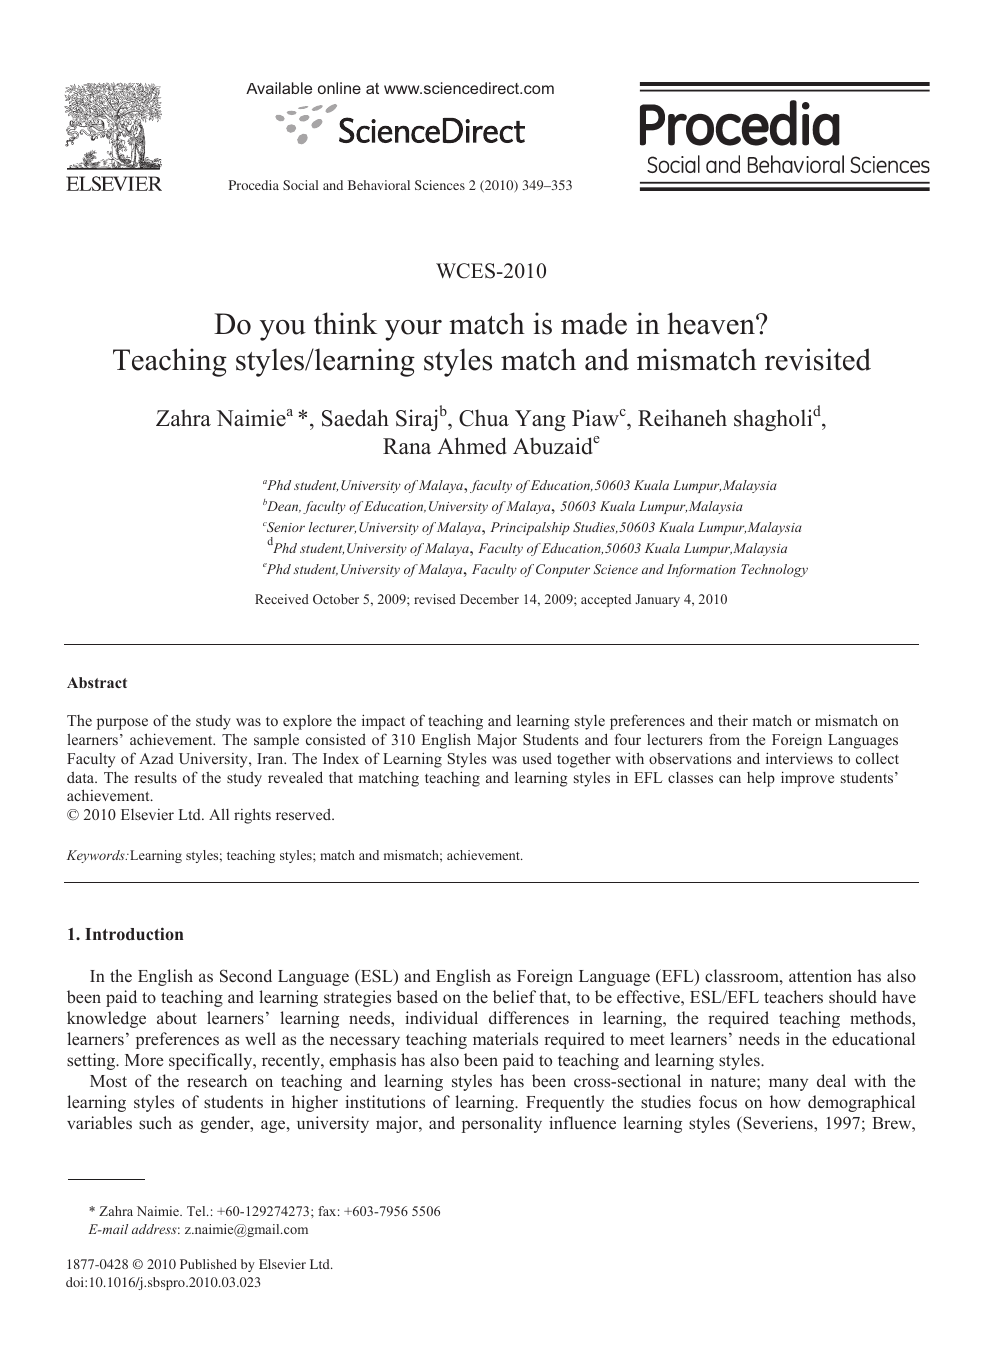 JETL (Journal Of Education, Teaching and Learning)